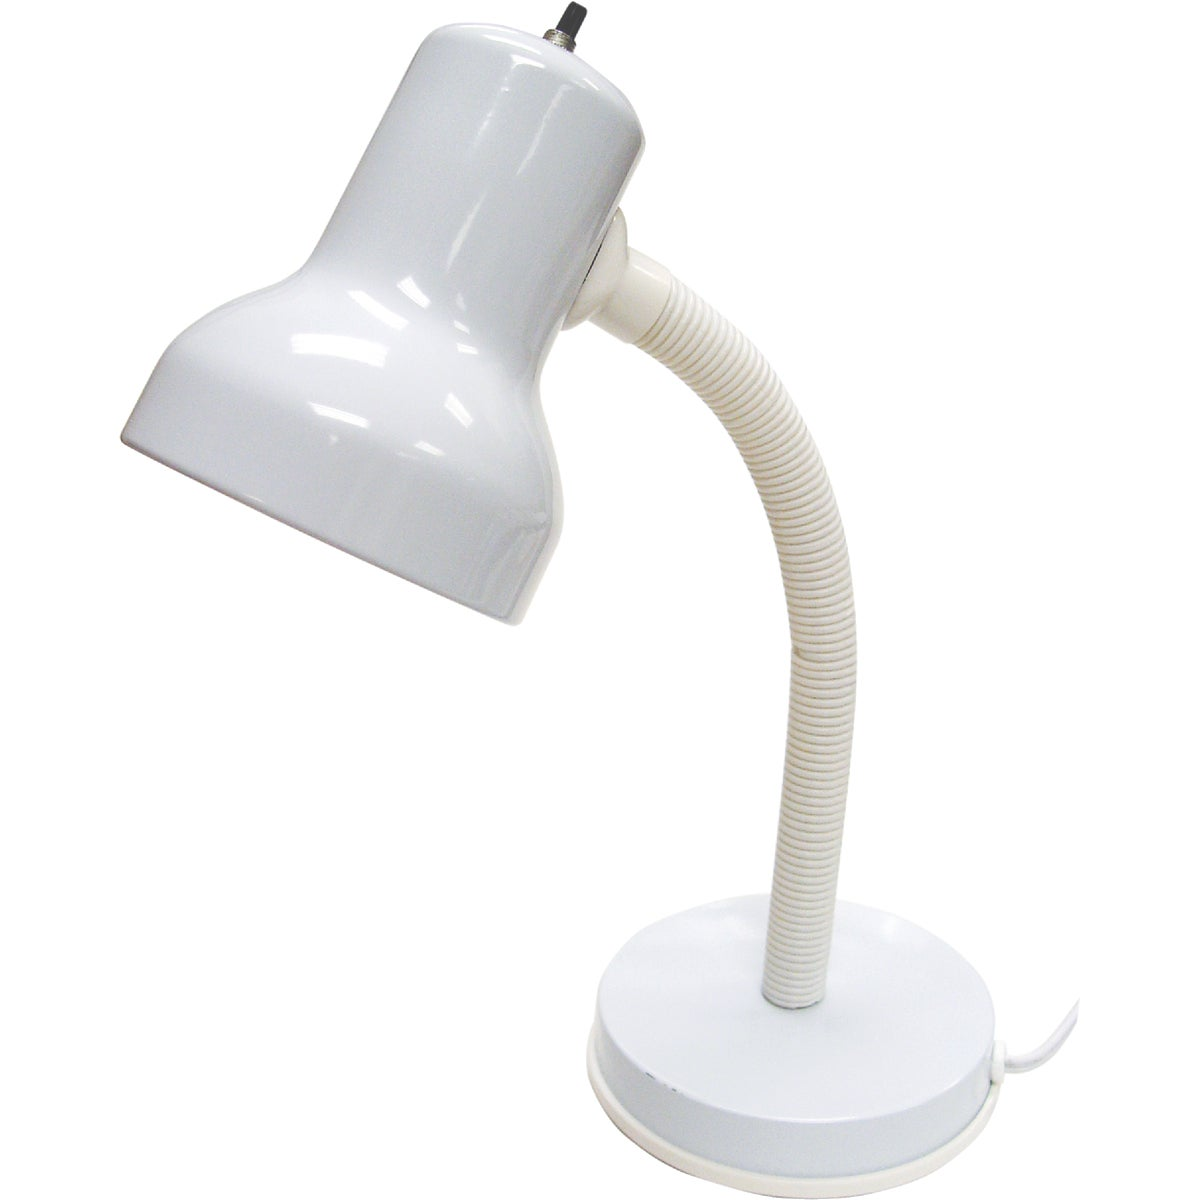 60W WHT GSNCK DESK LAMP